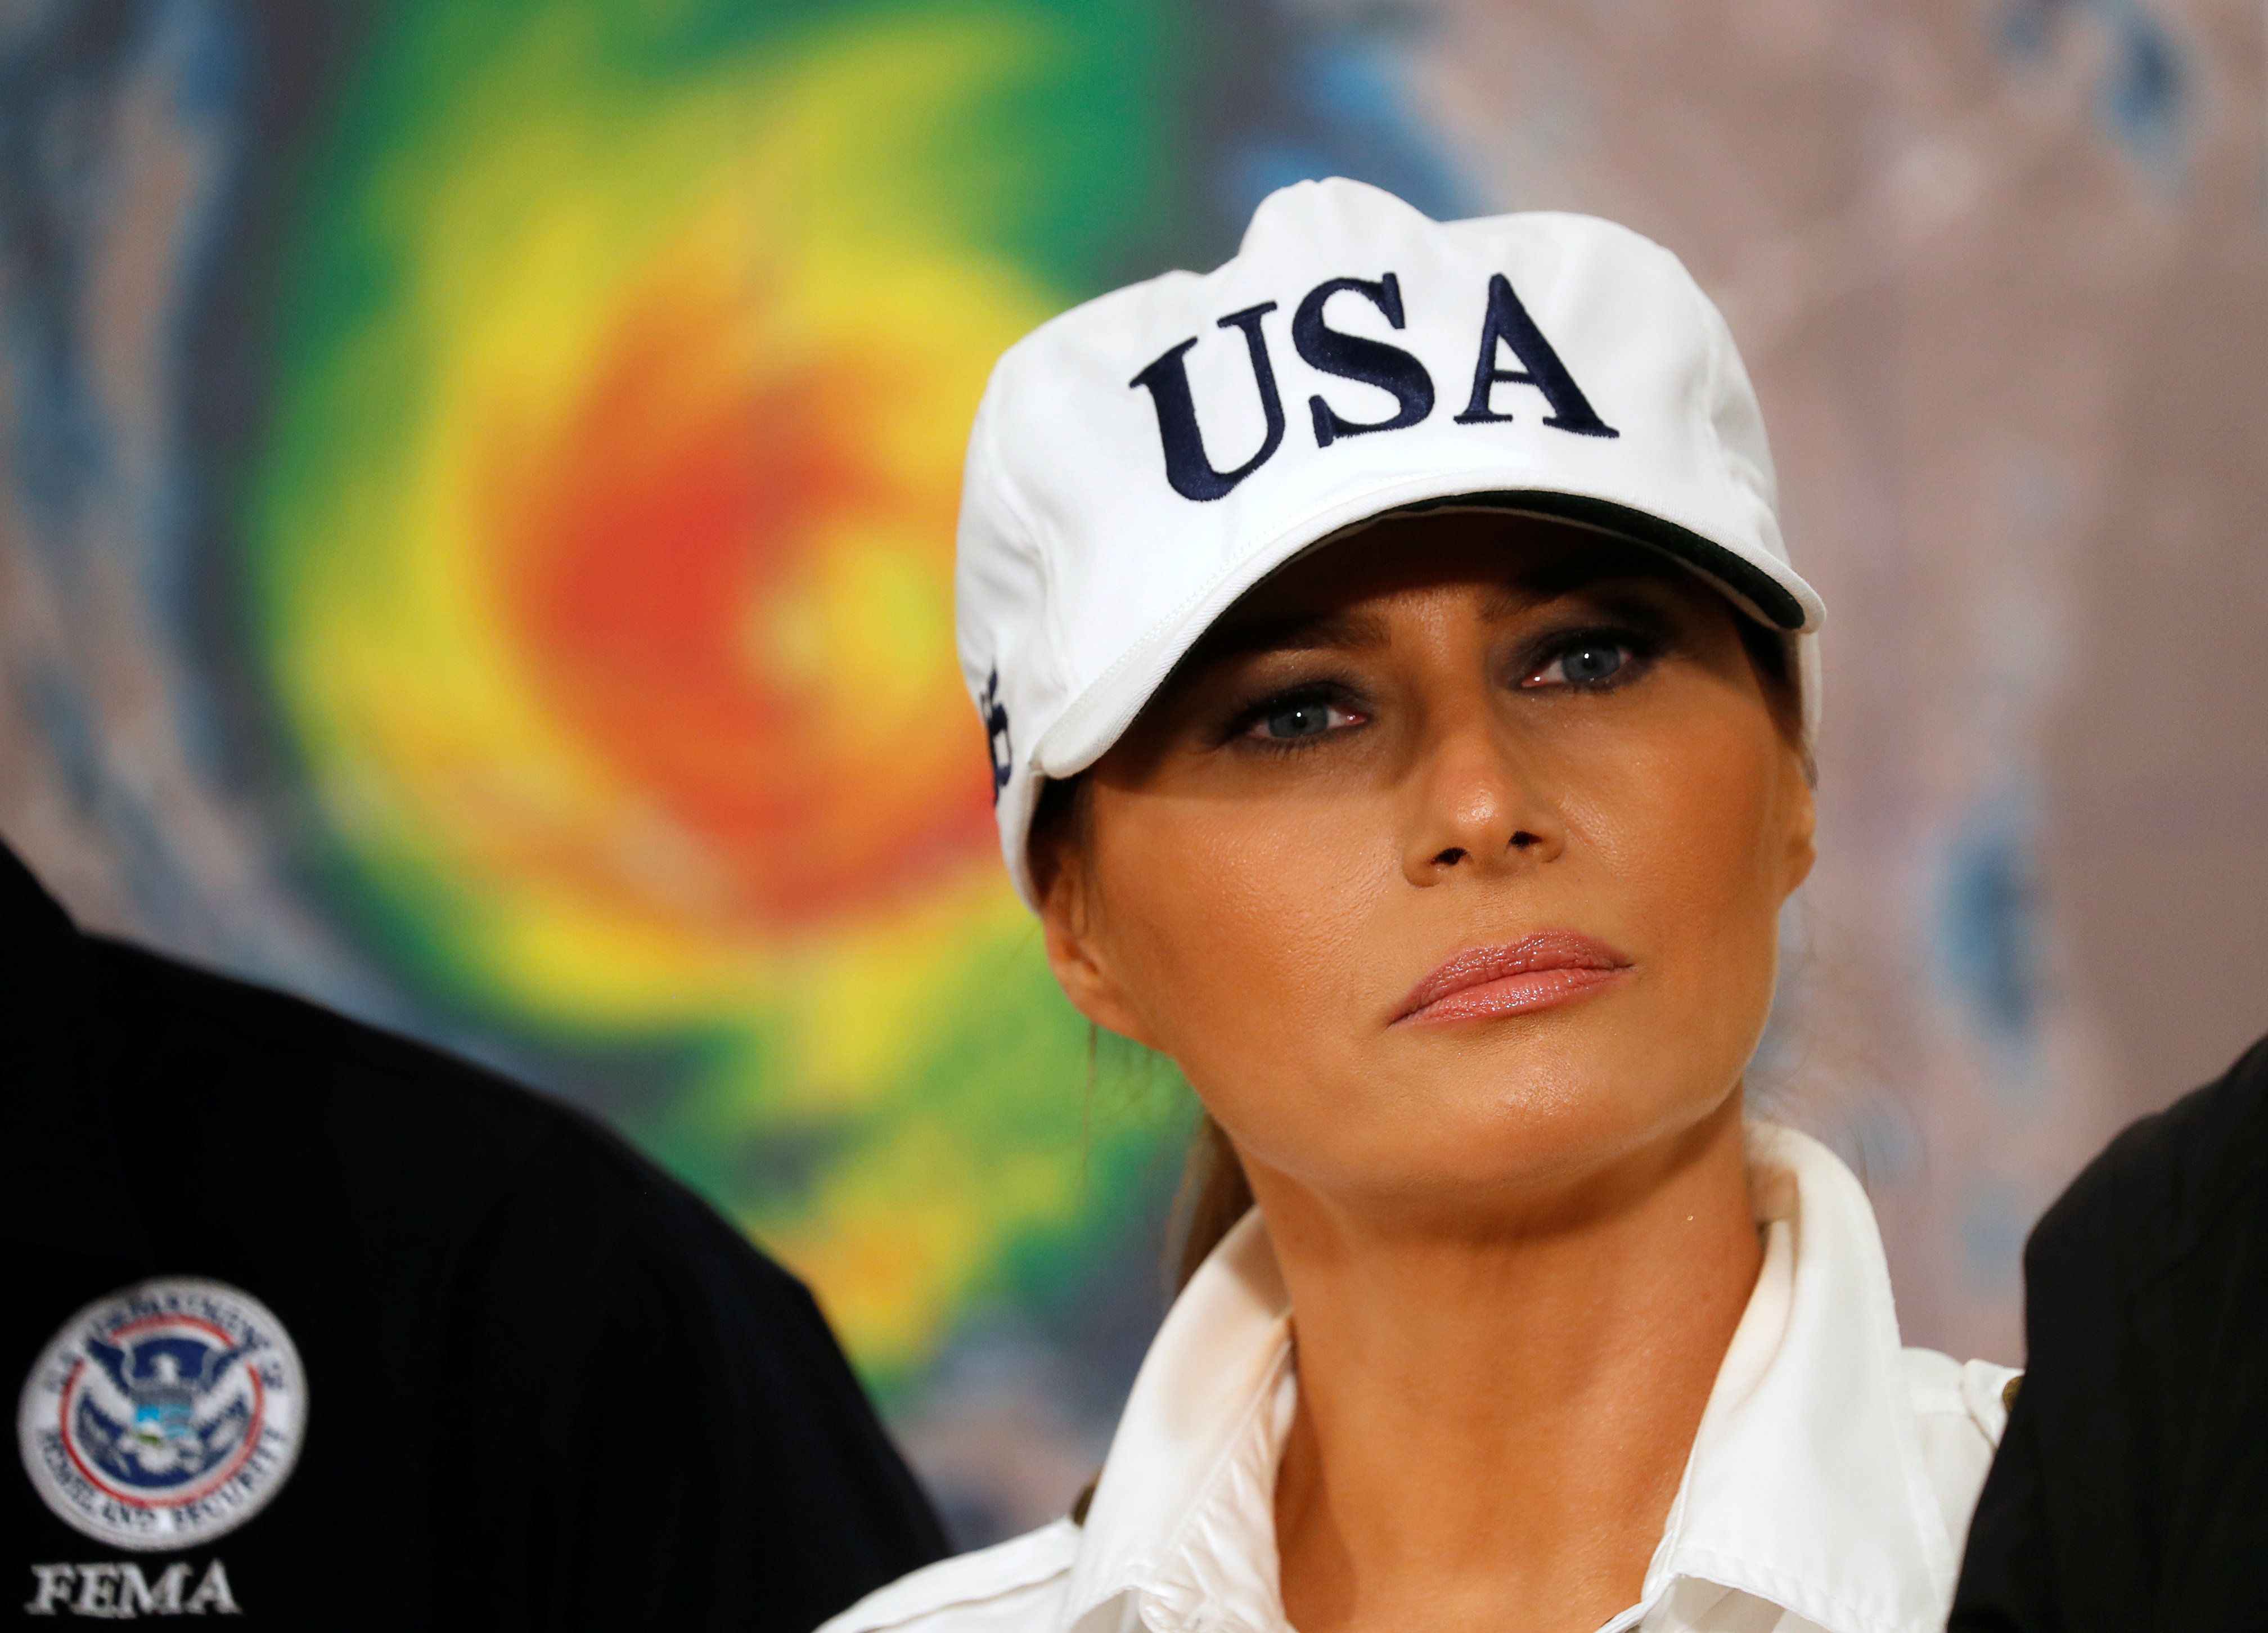 U.S. first lady Melania Trump listens during a Red Cross hurricane relief briefing at the Macon Farmers Market in Macon, Georgia, U.S., October 15, 2018. REUTERS/Kevin Lamarque